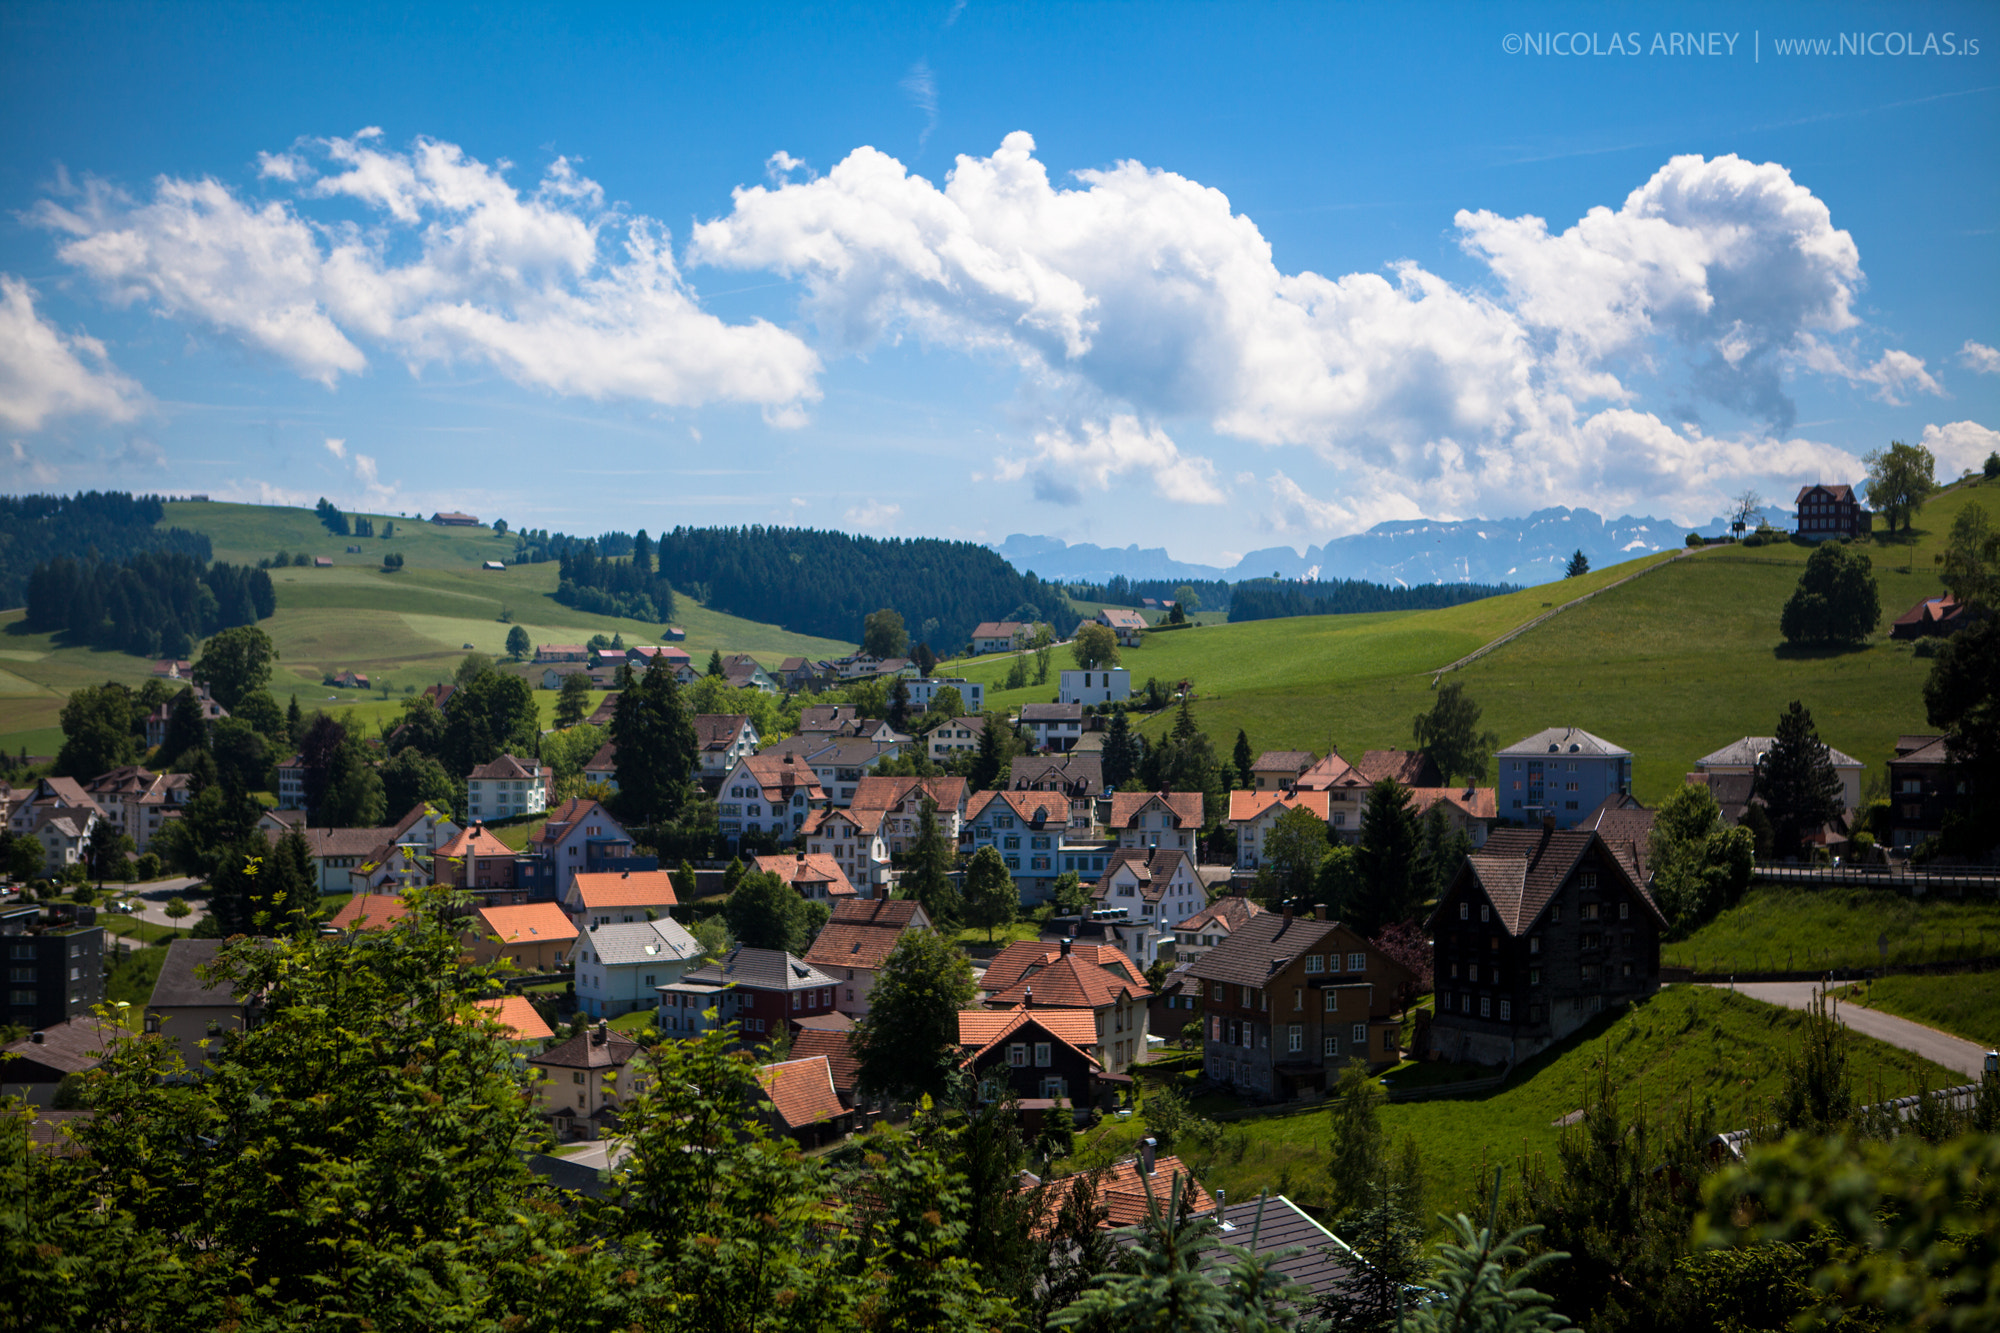 Photograph out of st gallen by Nicolas Arney on 500px